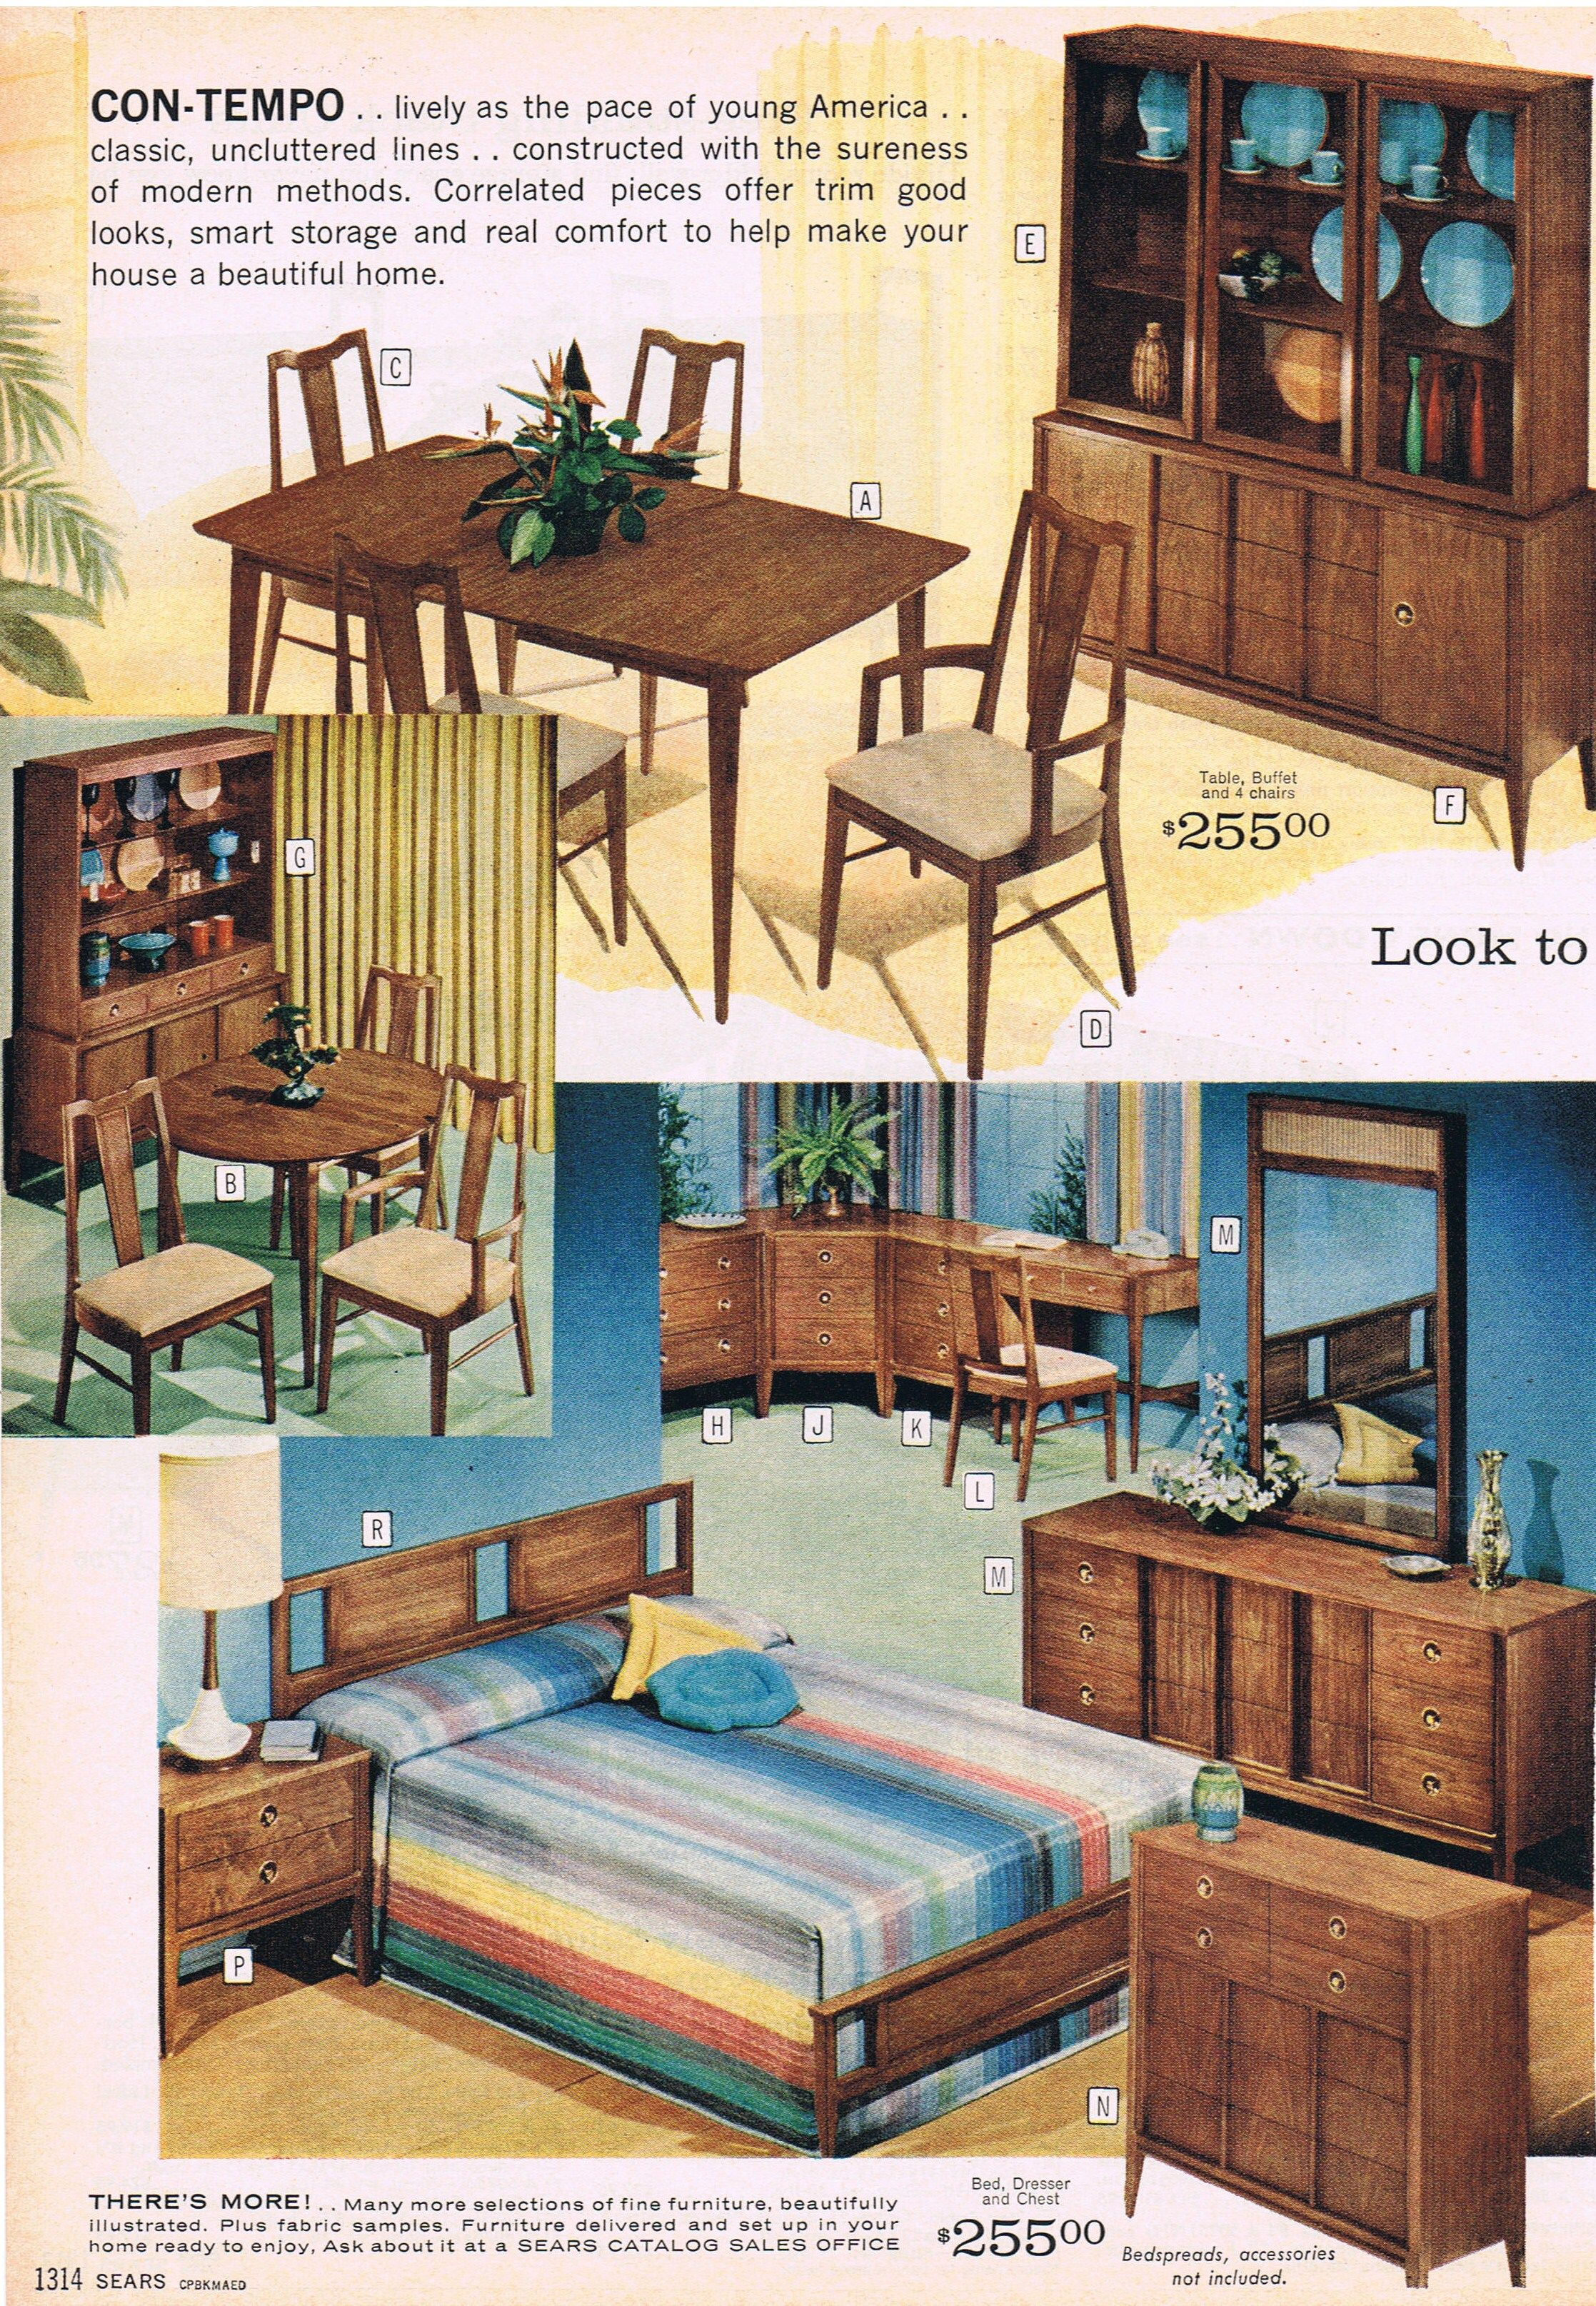 Con Tempo Mid Century Modern Furniture From Sears 1963 Guest House